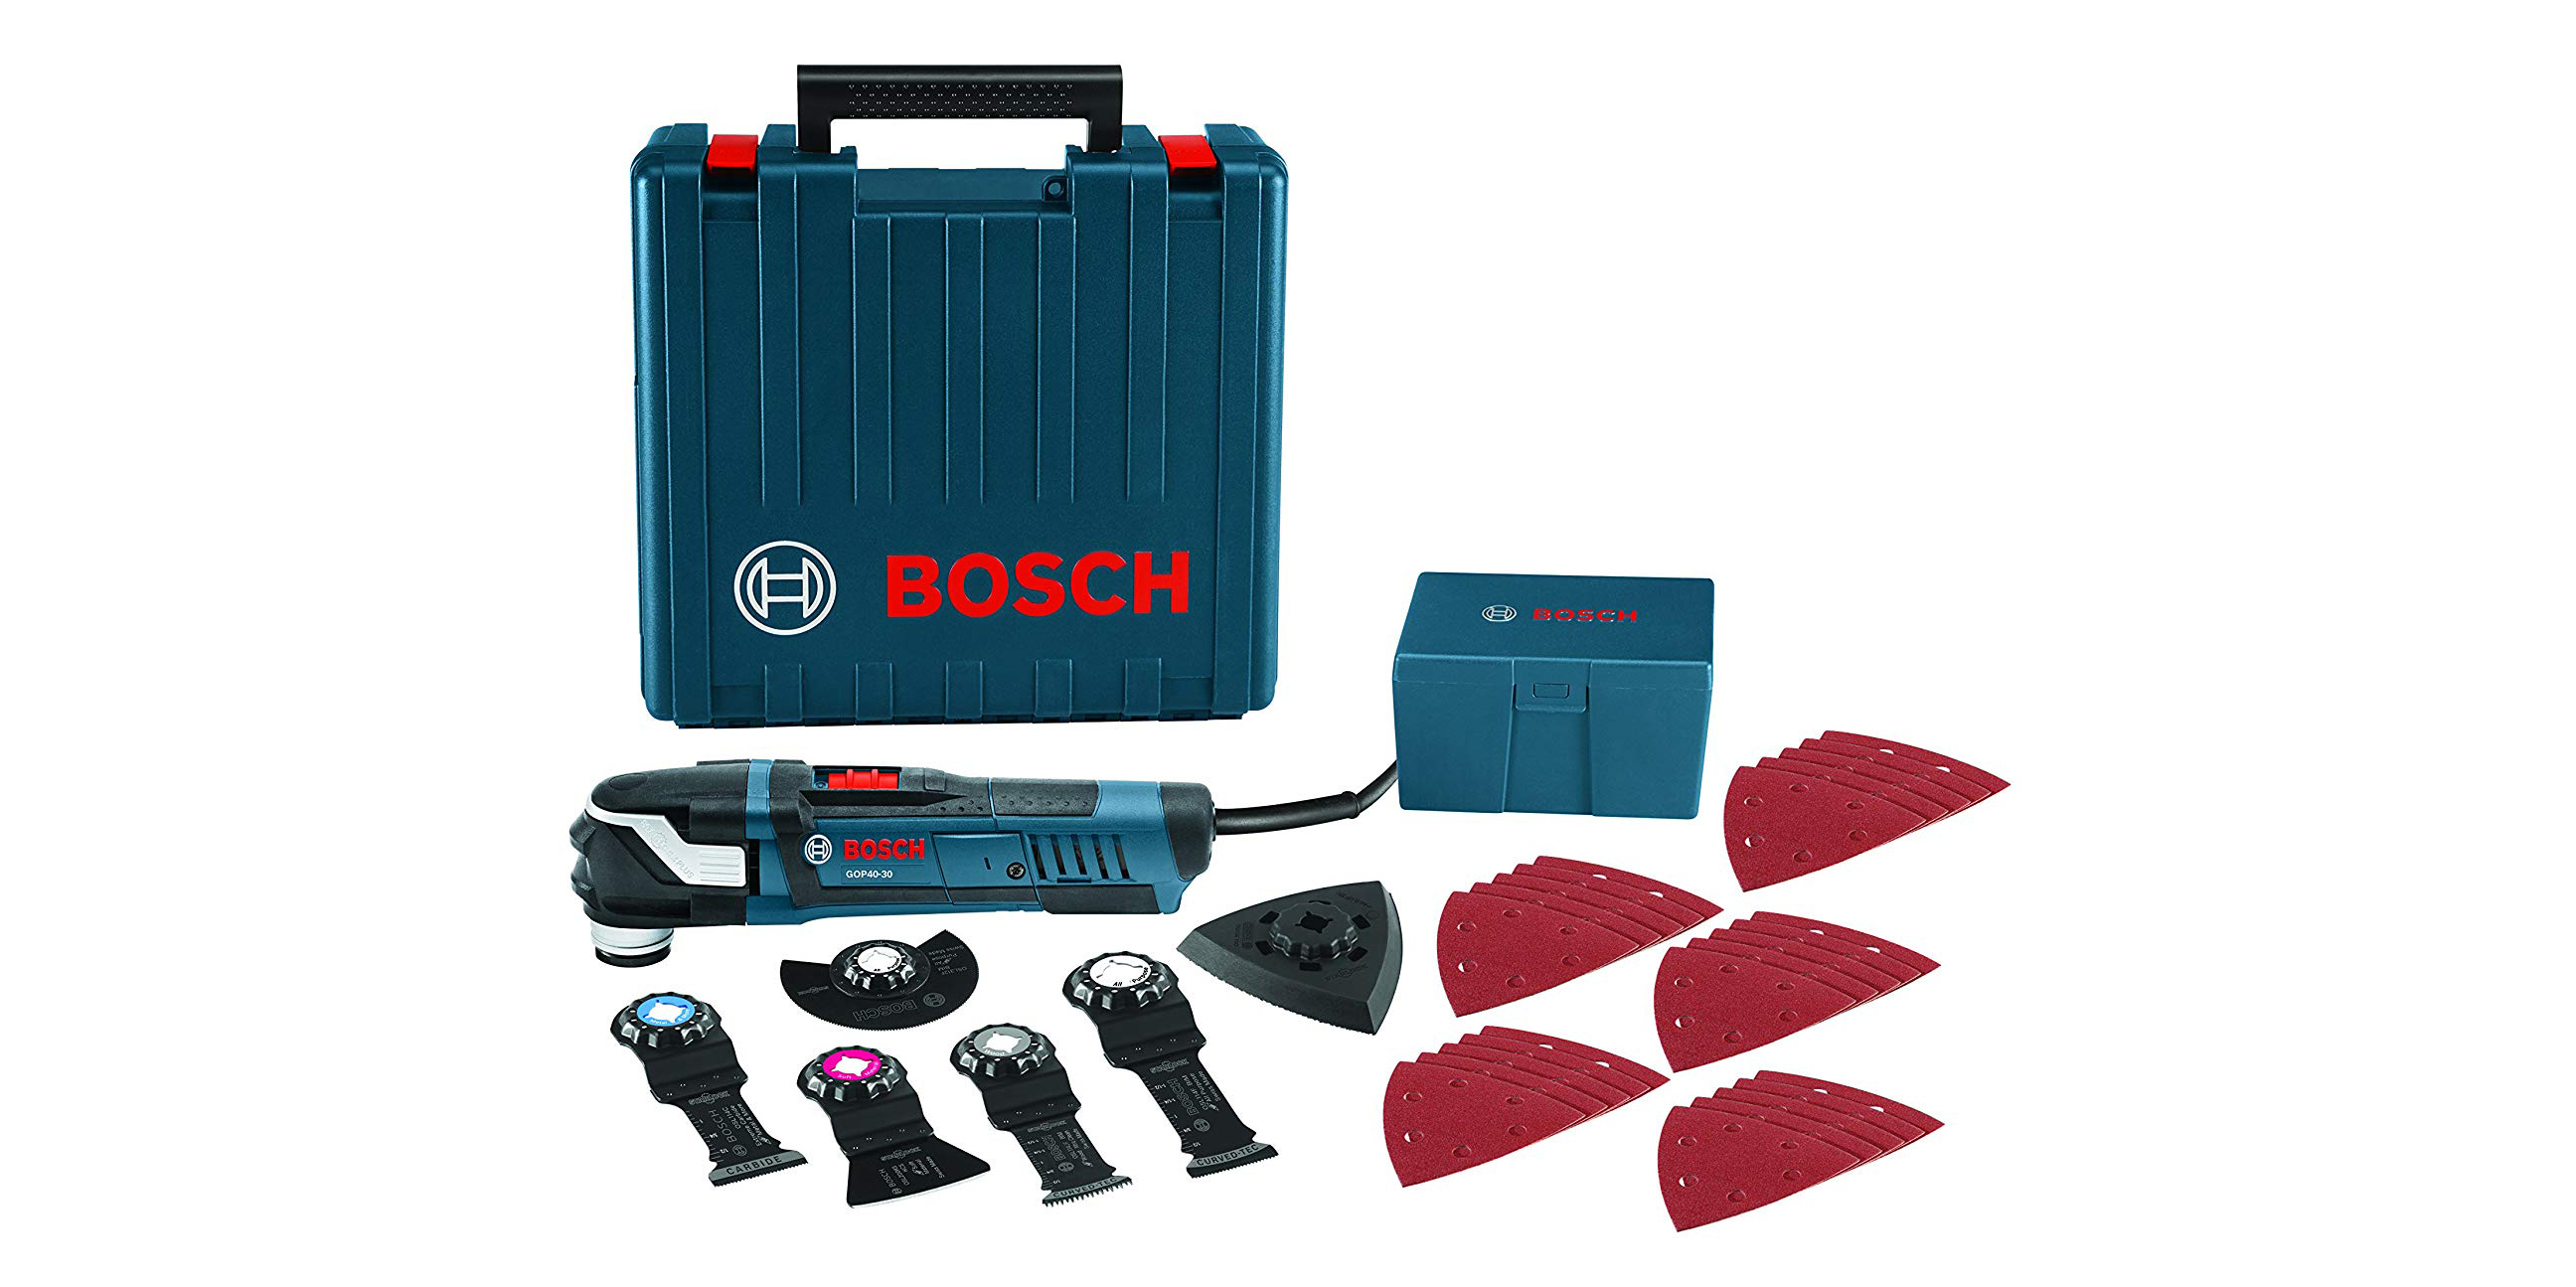 Get those DIY jobs down around the house w/ Bosch's StarlockPlus Multi-Tool for $169